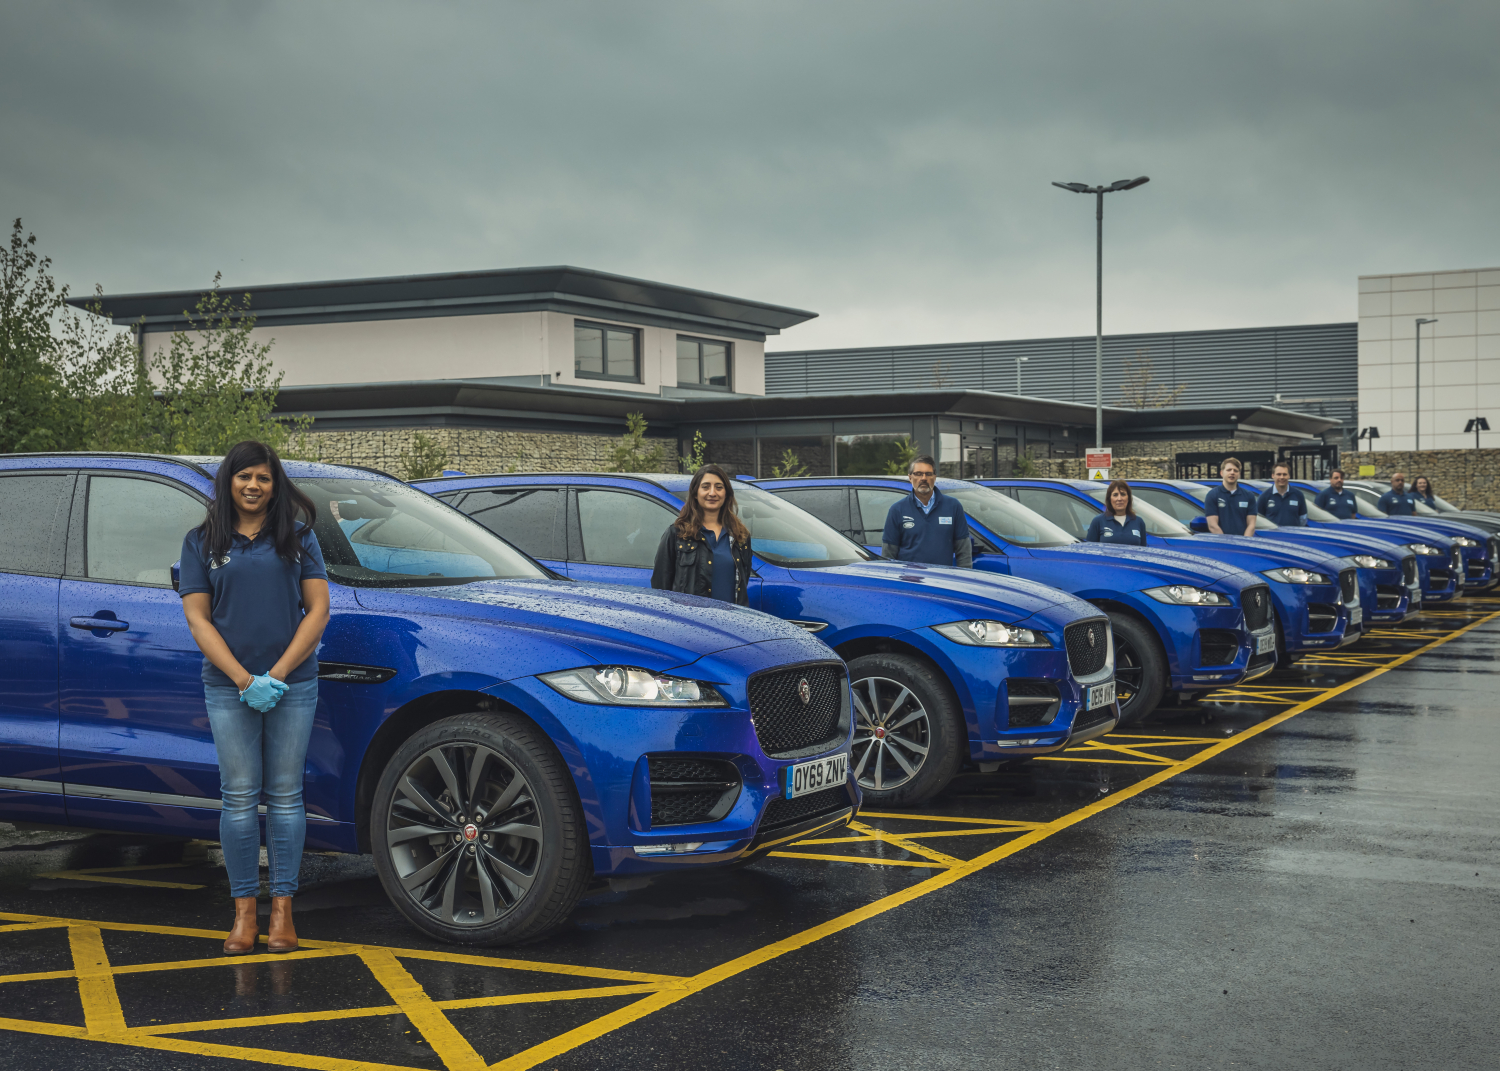 Jaguar And Land Rover Coronavirus Support: Over 360 Vehicles Deployed Globally To Support Emergency Response - Brand Spur